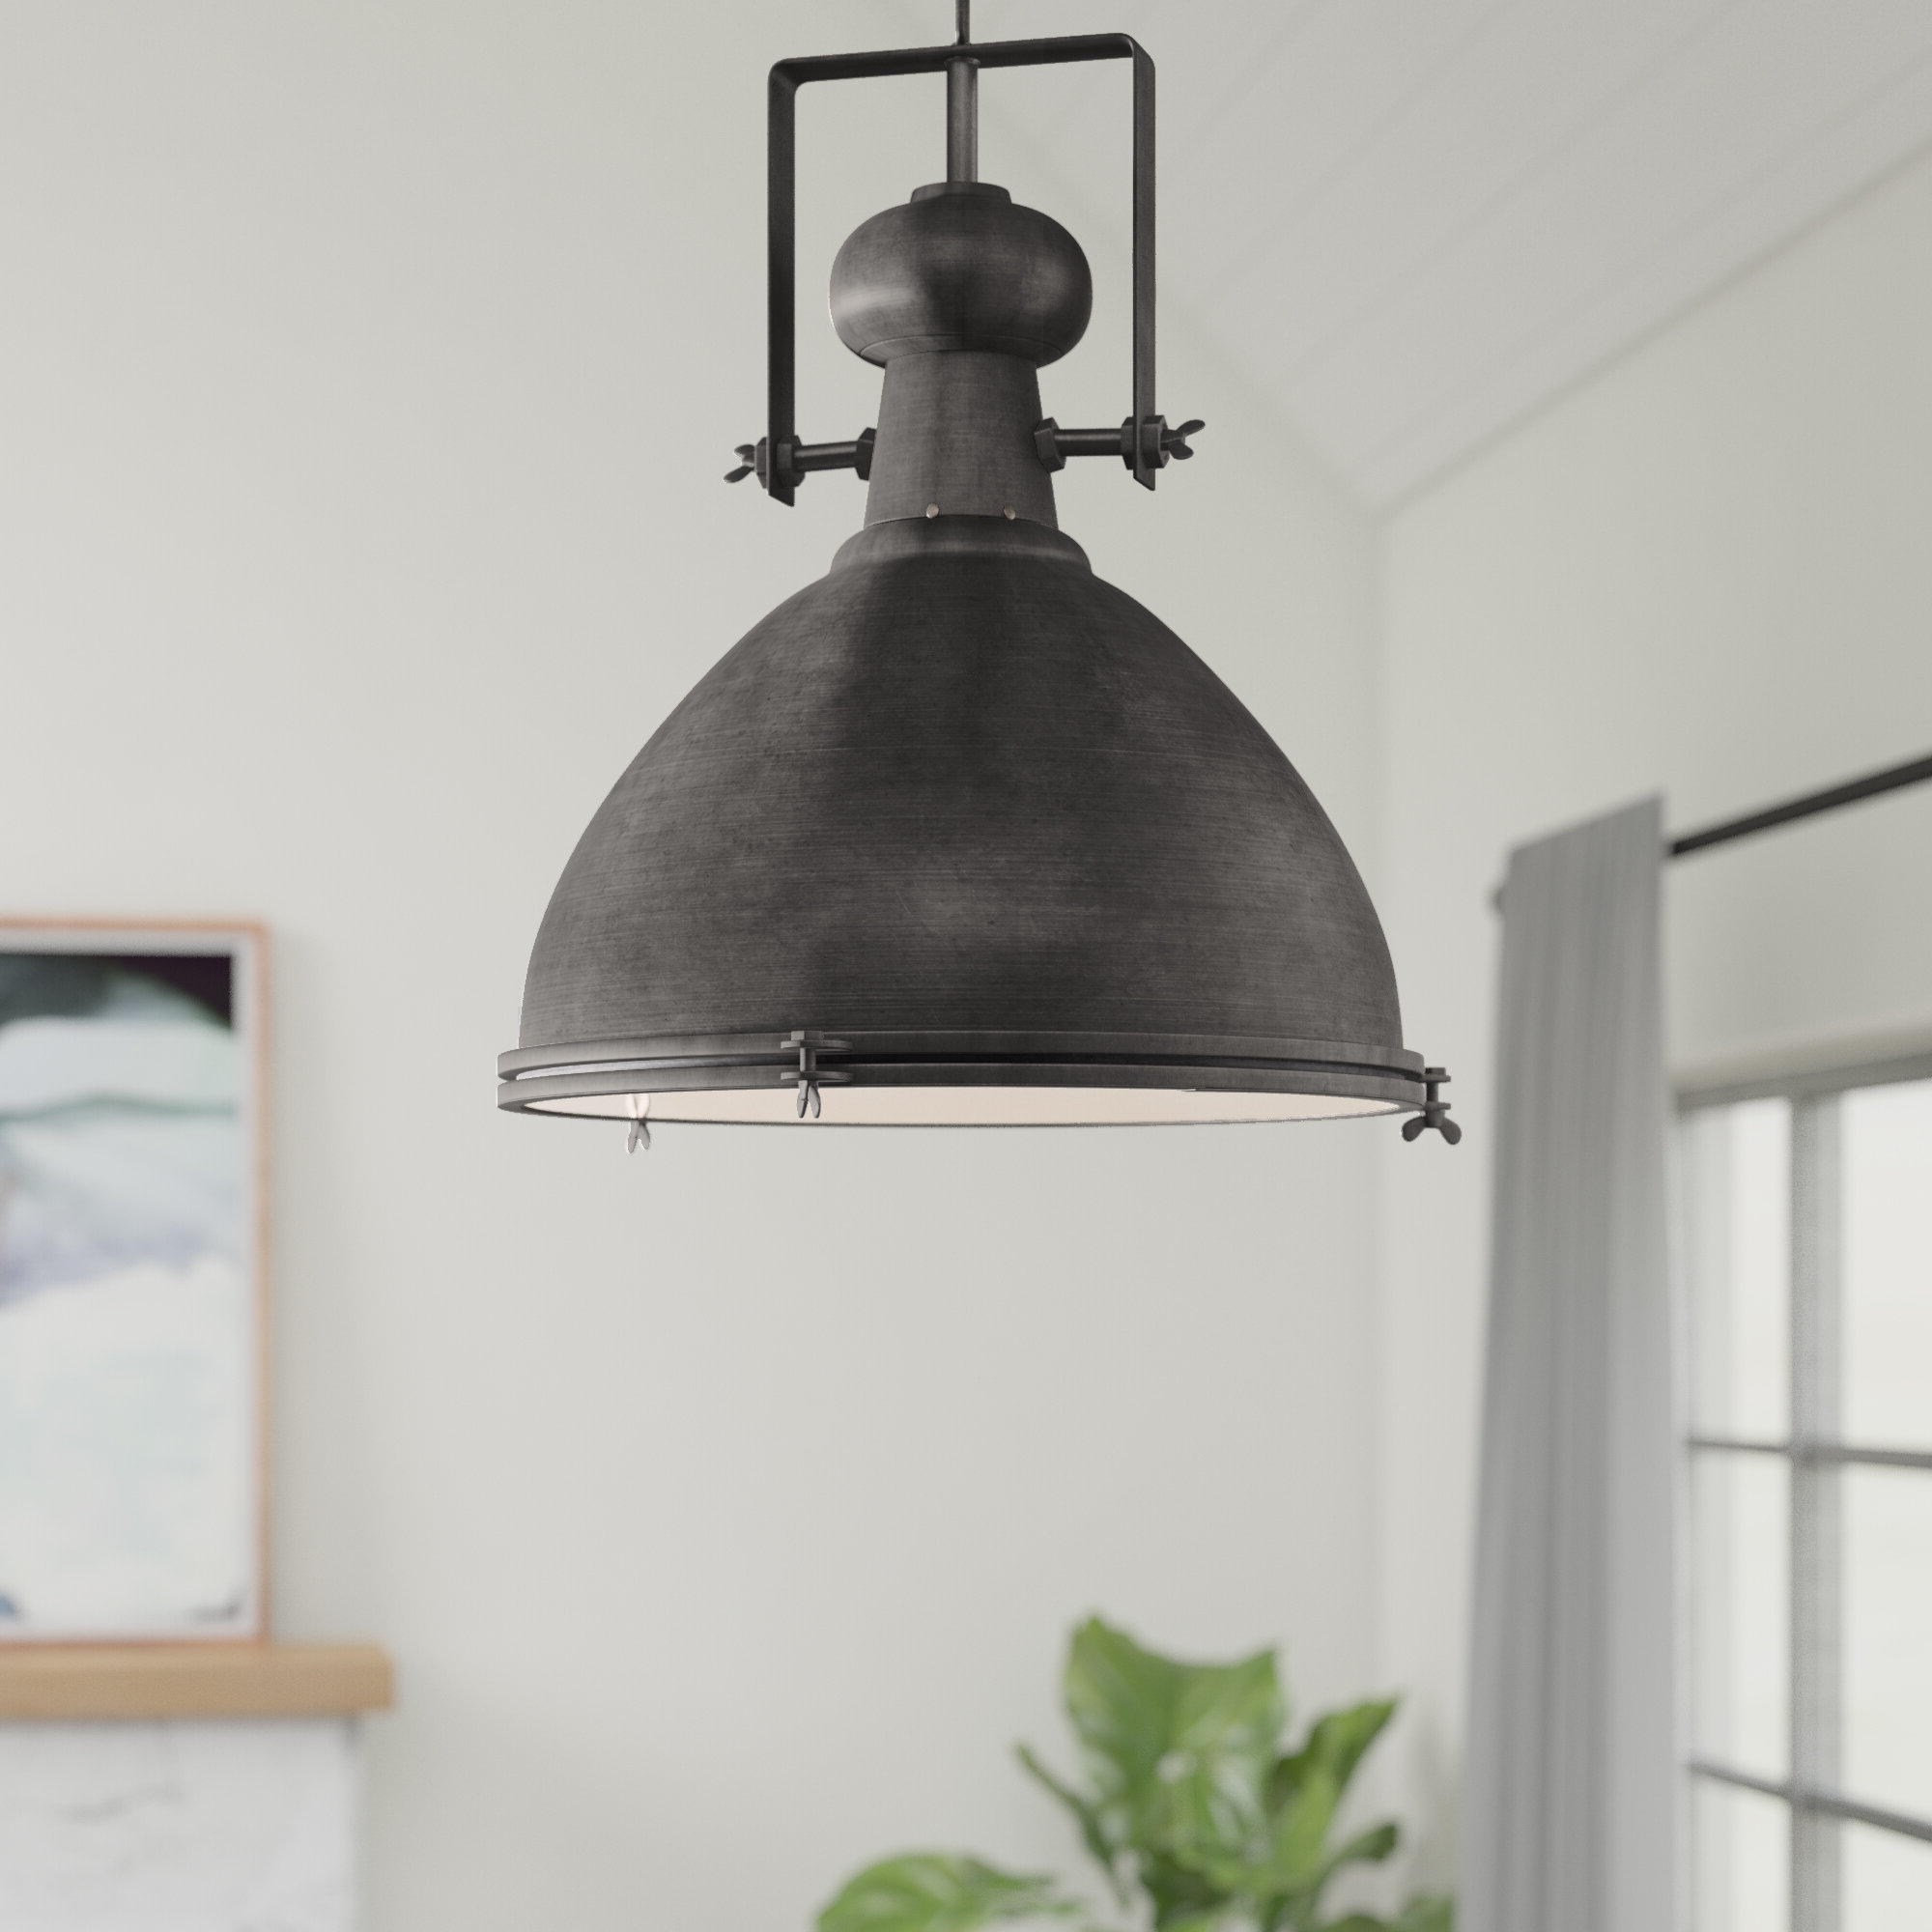 Lavern 1 Light Single Dome Pendant Intended For 2020 1 Light Single Dome Pendants (View 12 of 20)